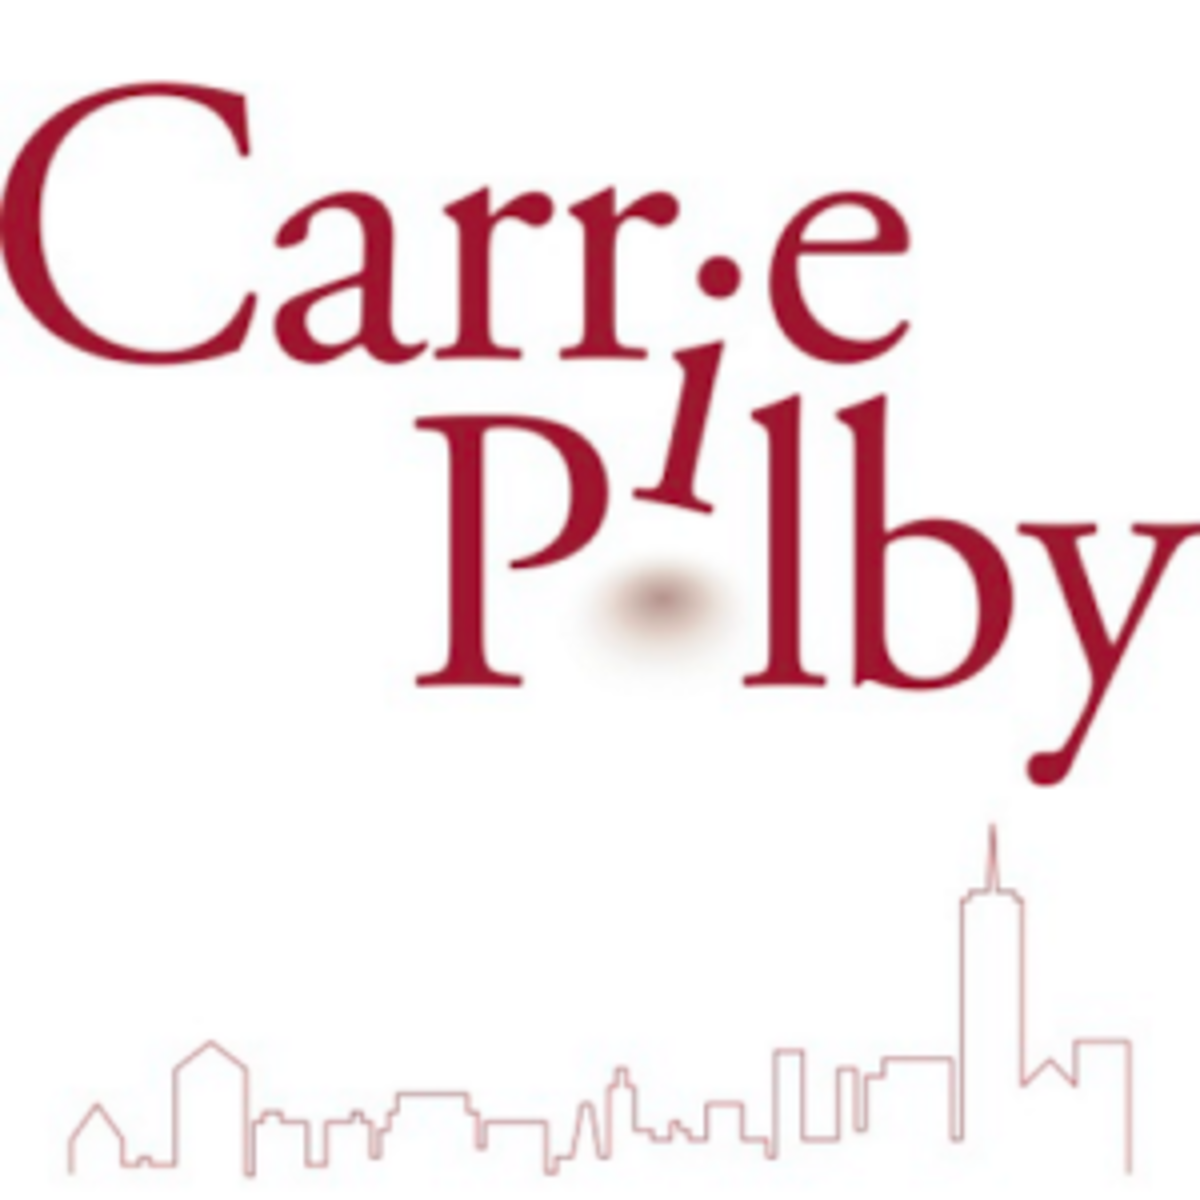 INTERVIEW: Q&A with Screenwriter of 'Carrie Pilby' Kara Holden by Denny Schnulo | Script Magazine #scriptchat #screenwriting